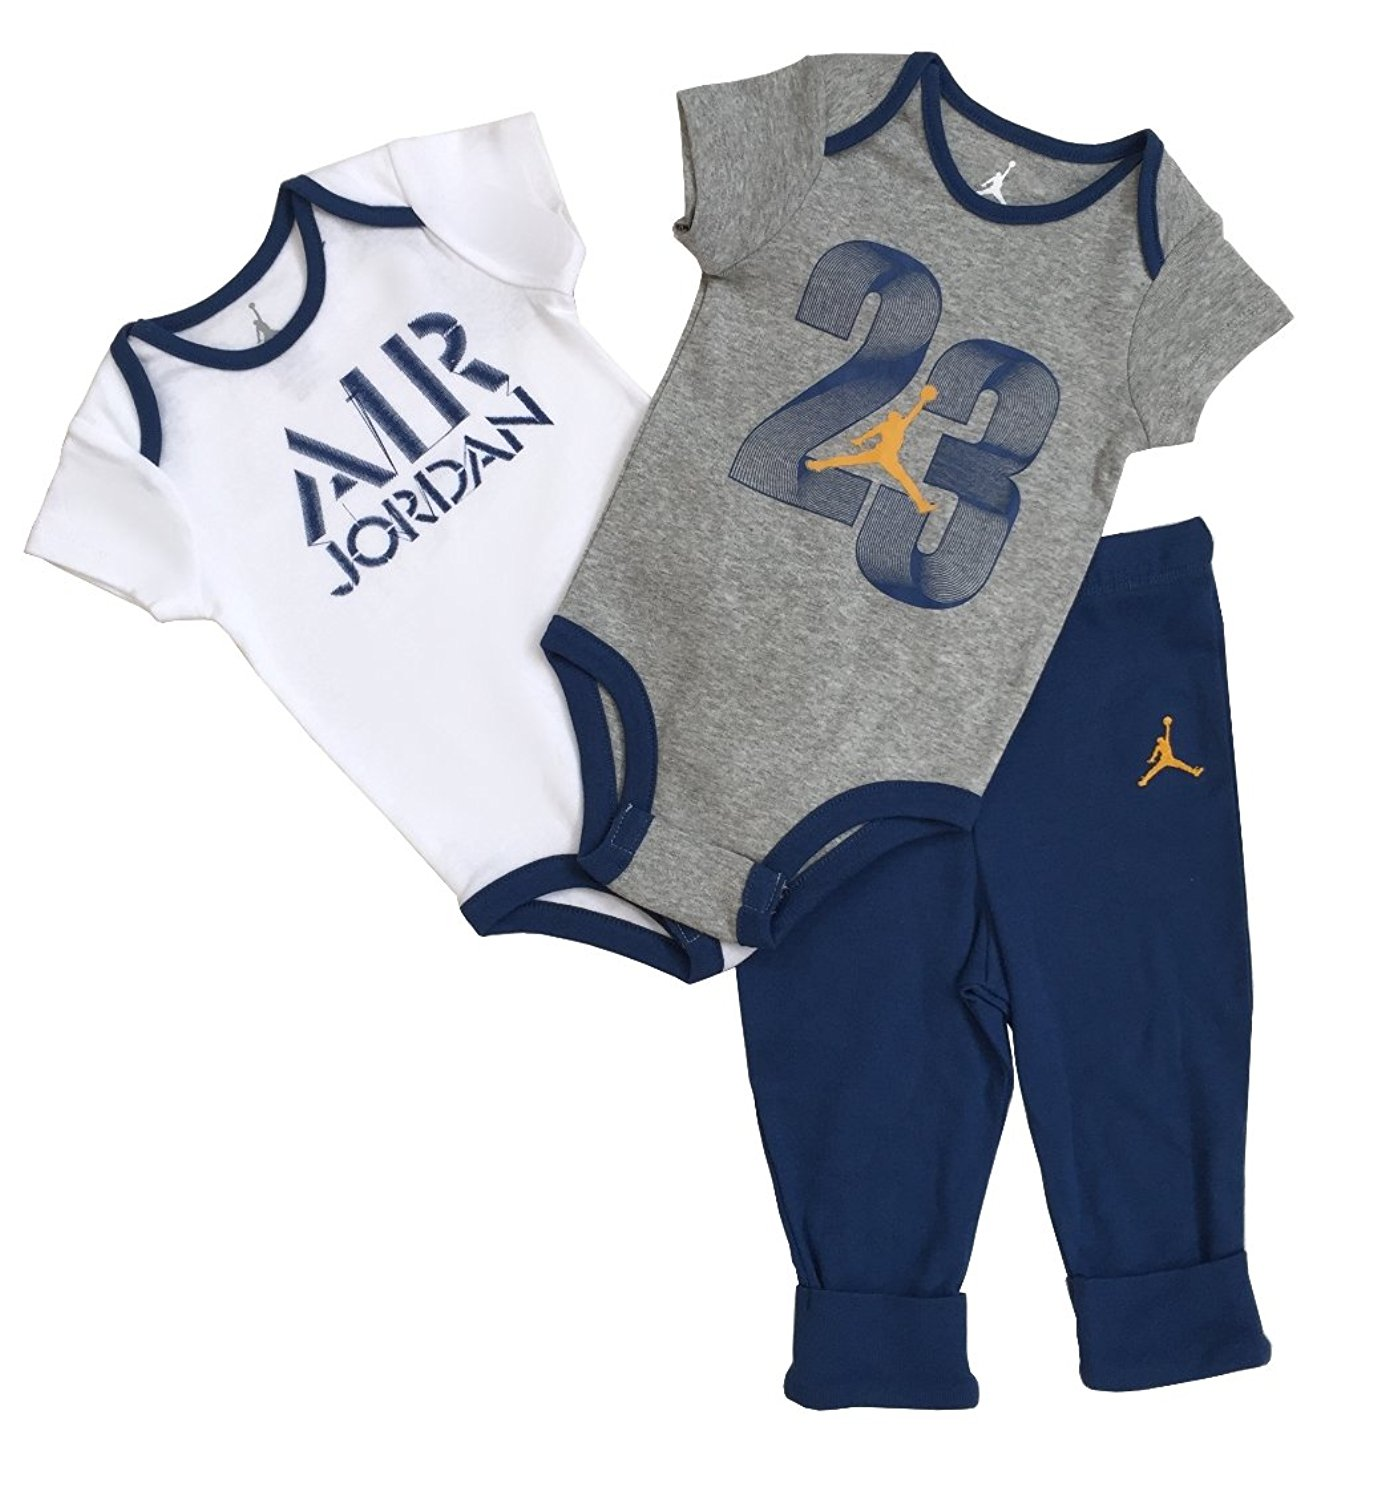 19344a96f3c Nike Jordan Infant New Born Baby 3 Pcs Layette Set (9 12M) - Baby Clothes